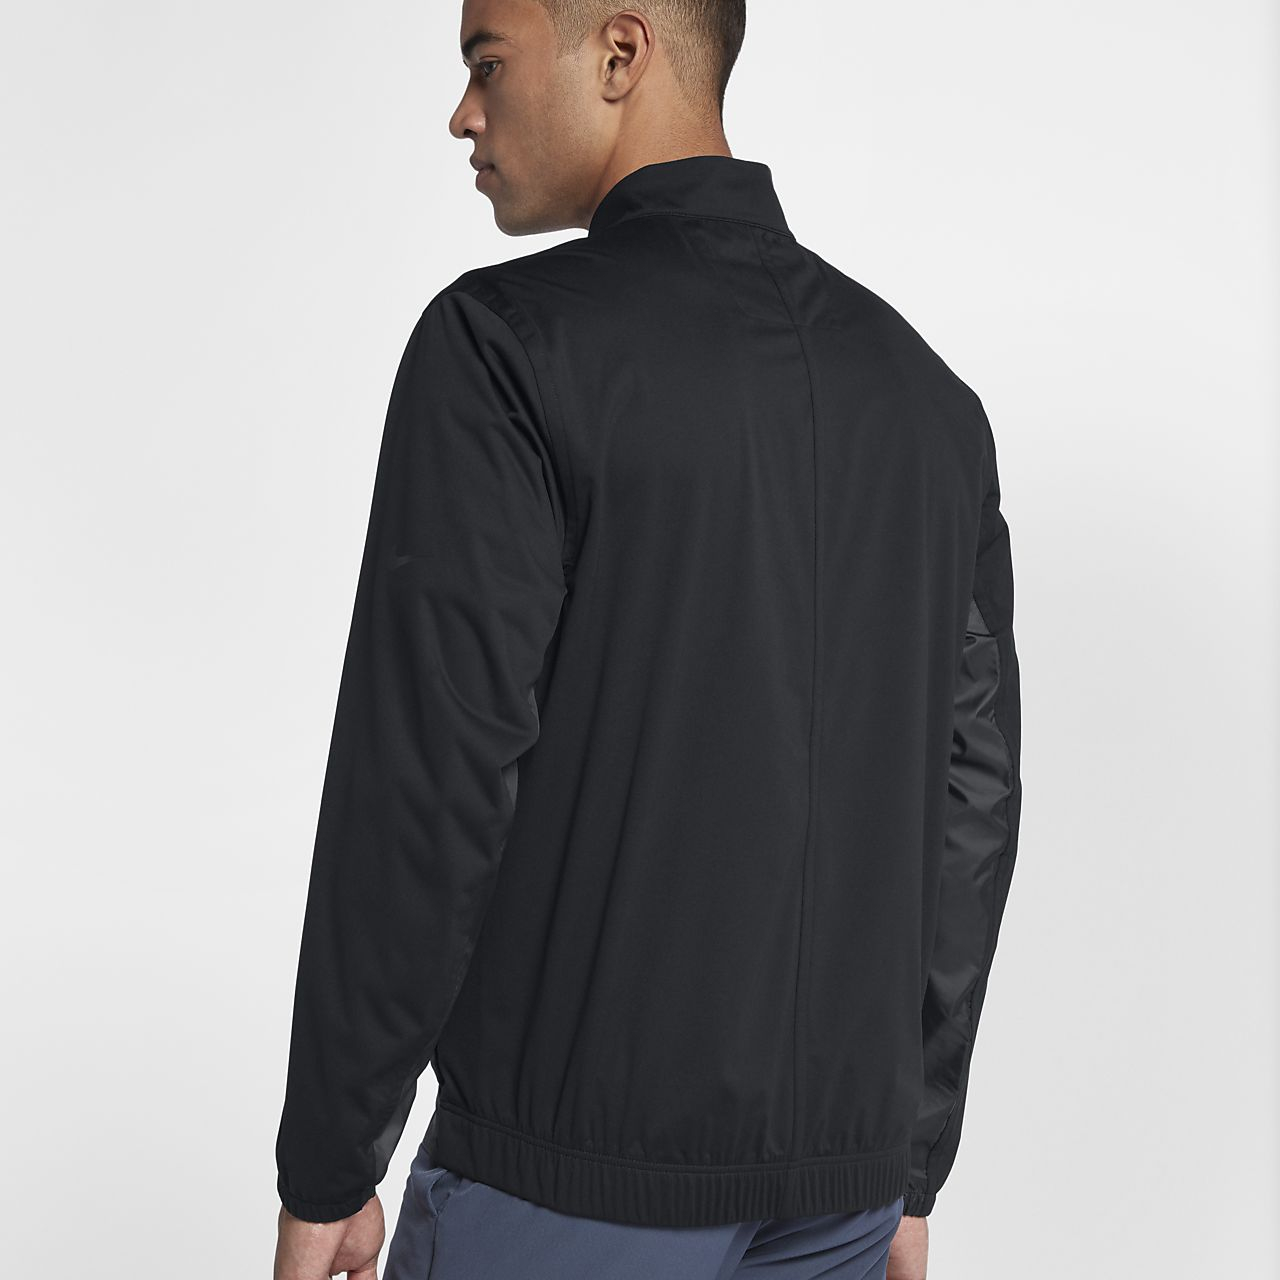 595f7486013c Nike Shield Men s Full-Zip Golf Jacket. Nike.com